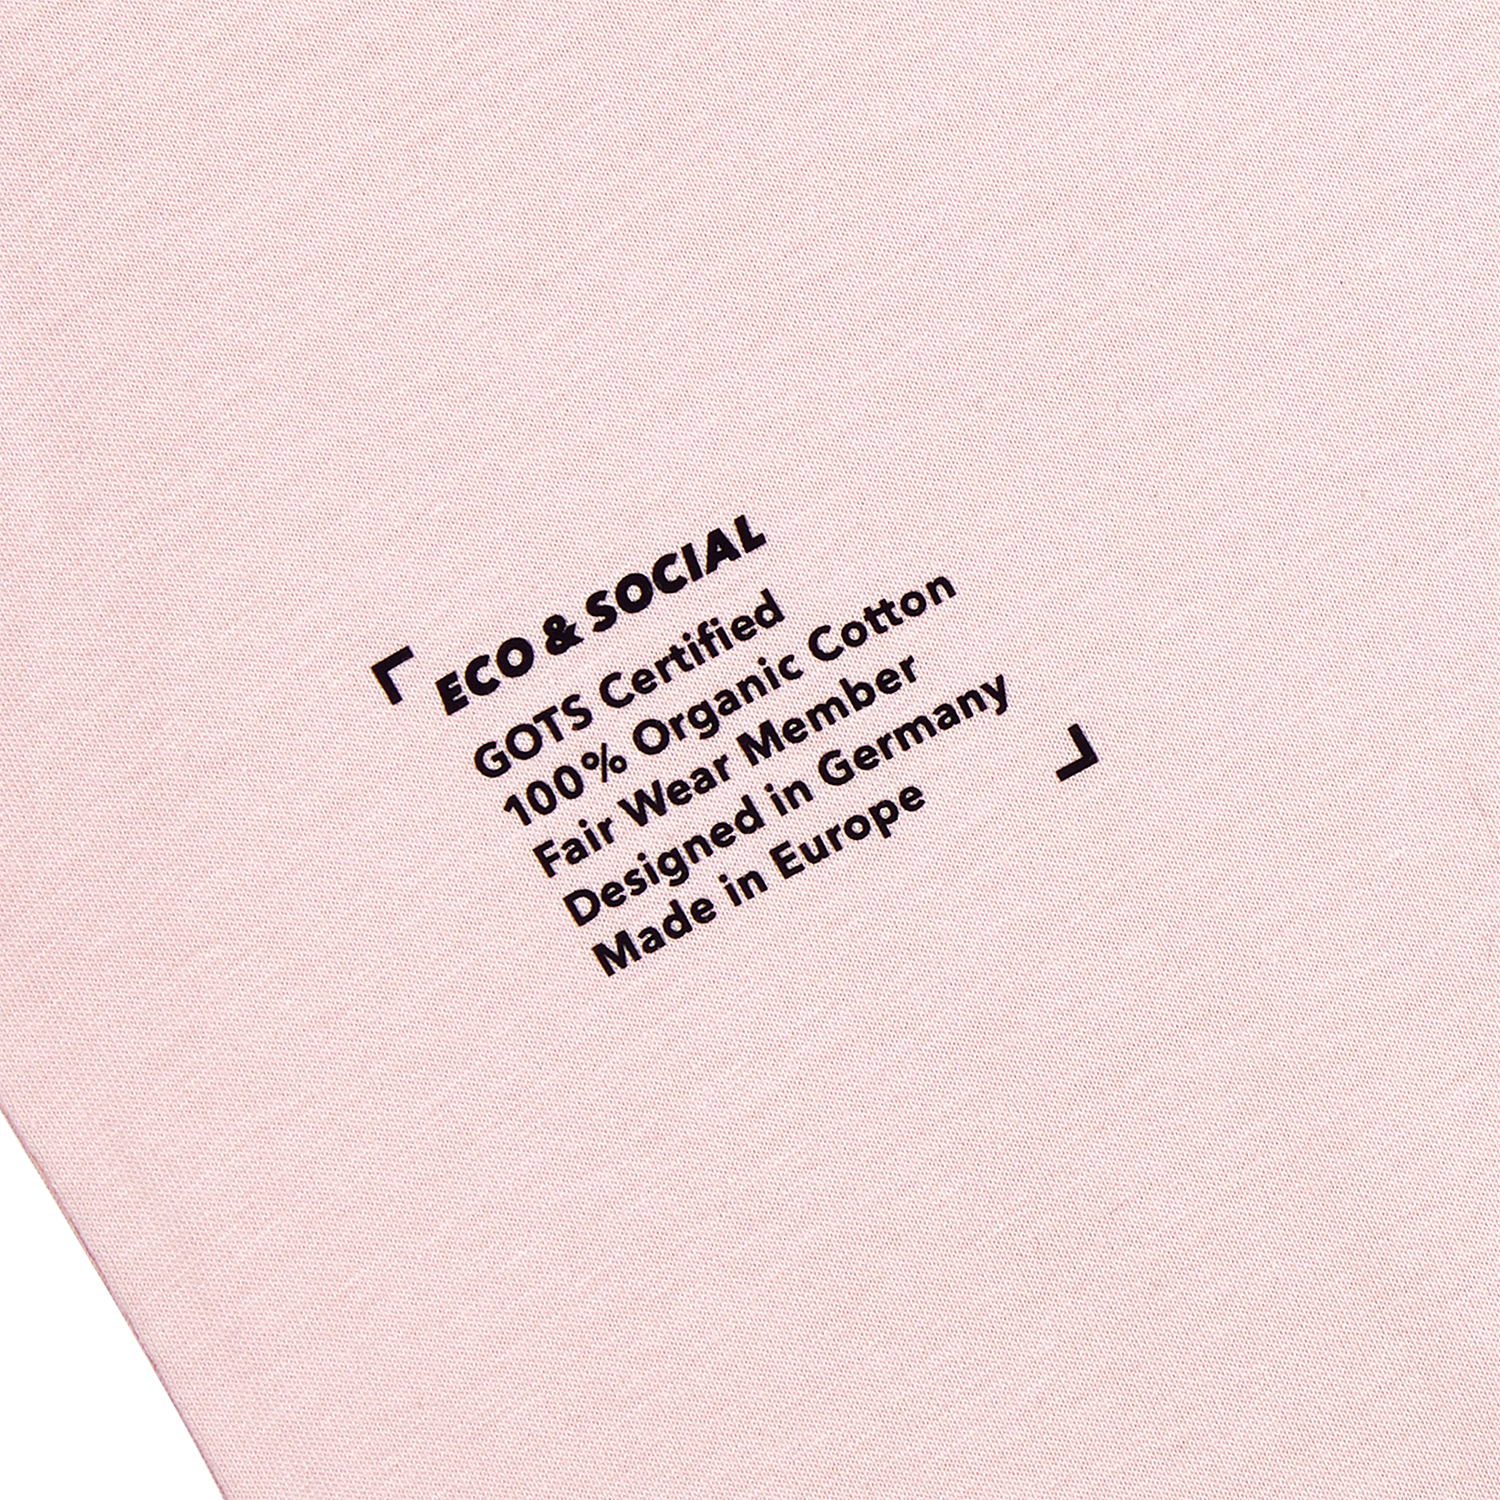 GOOD LIFE - Concept Store